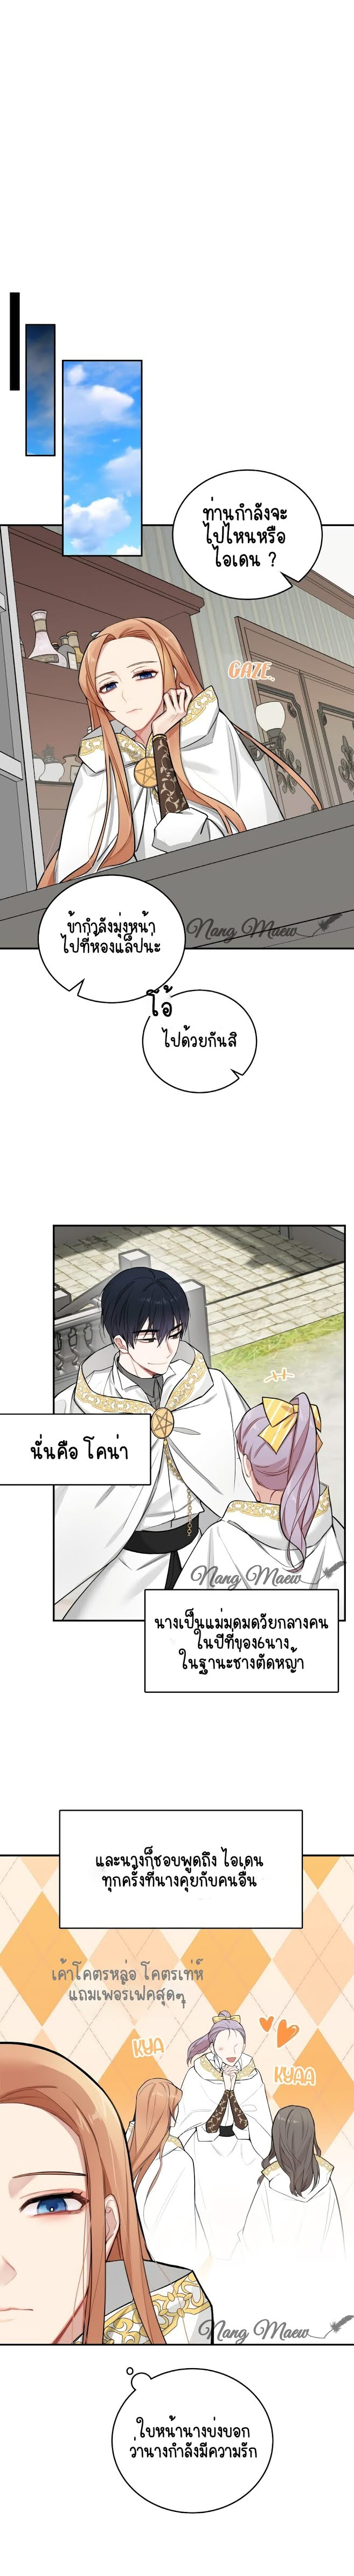 The Newlywed Life of a Witch and a Dragon - หน้า 12